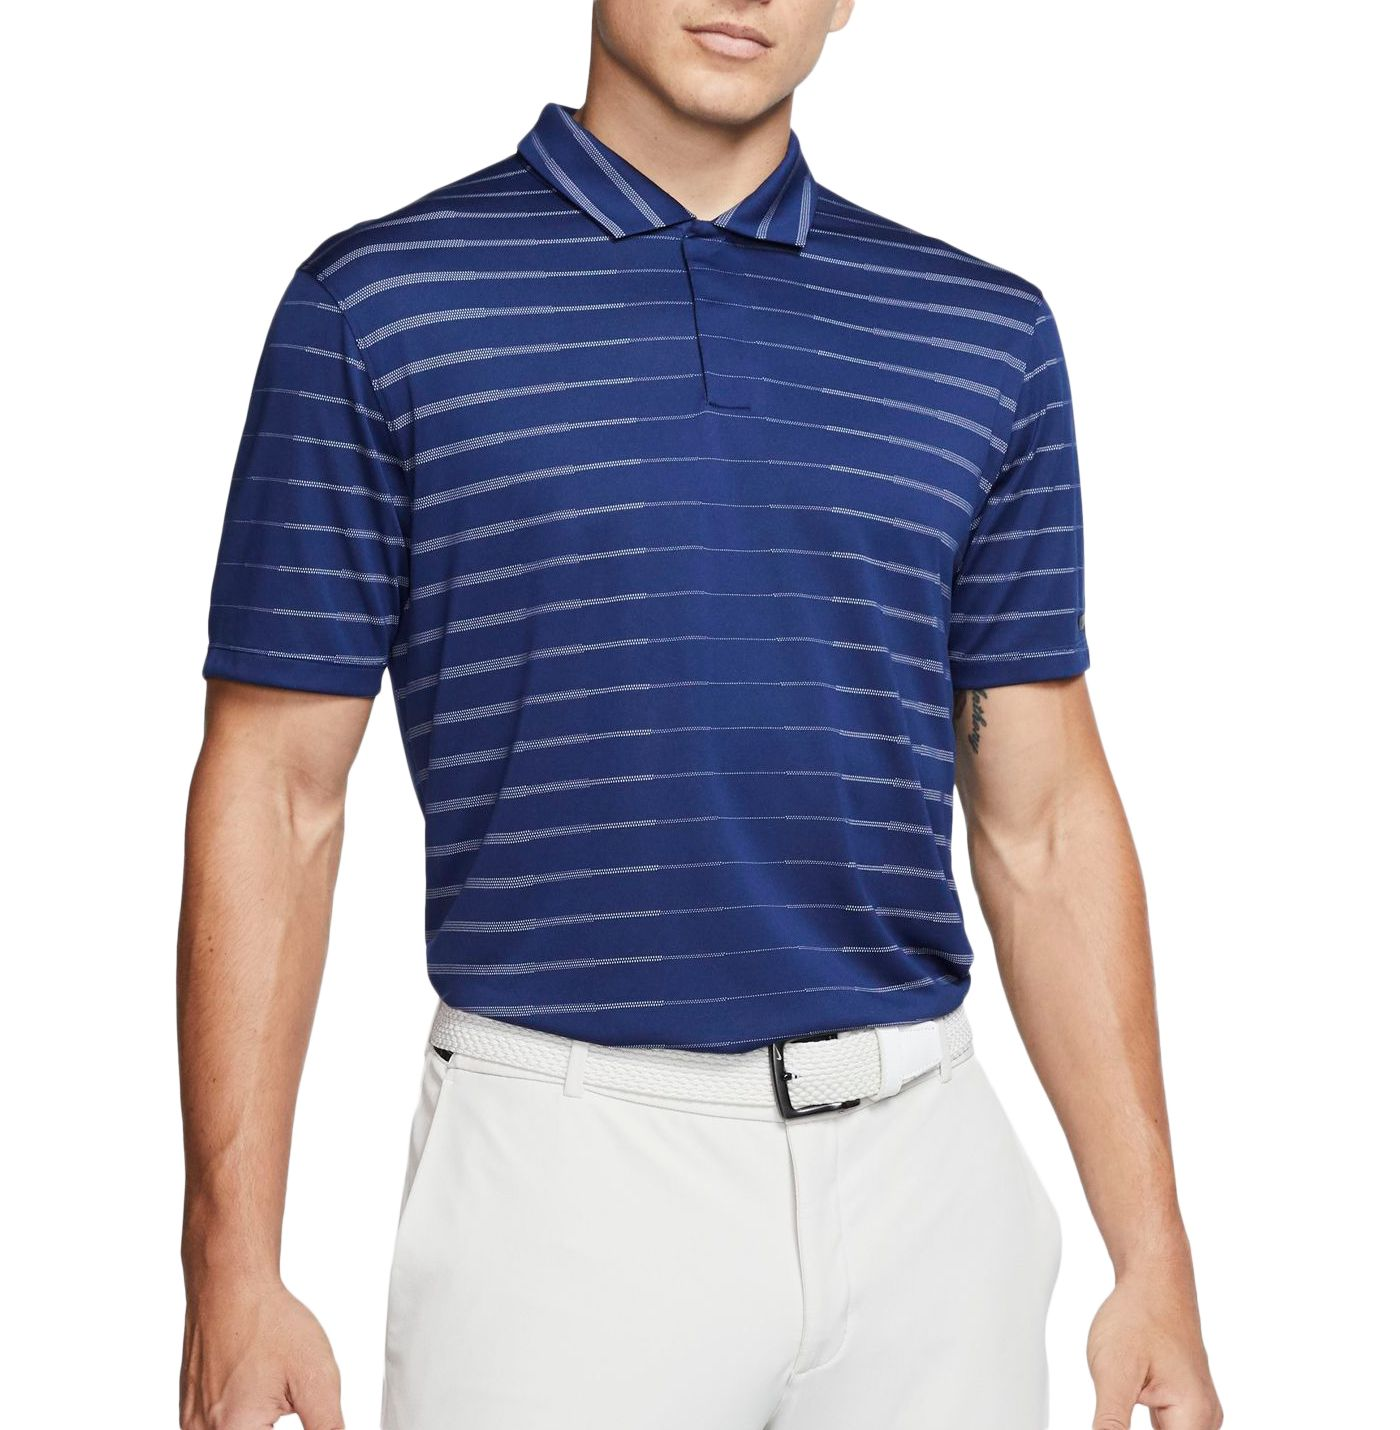 Nike Men's Tiger Woods Novelty Golf Polo